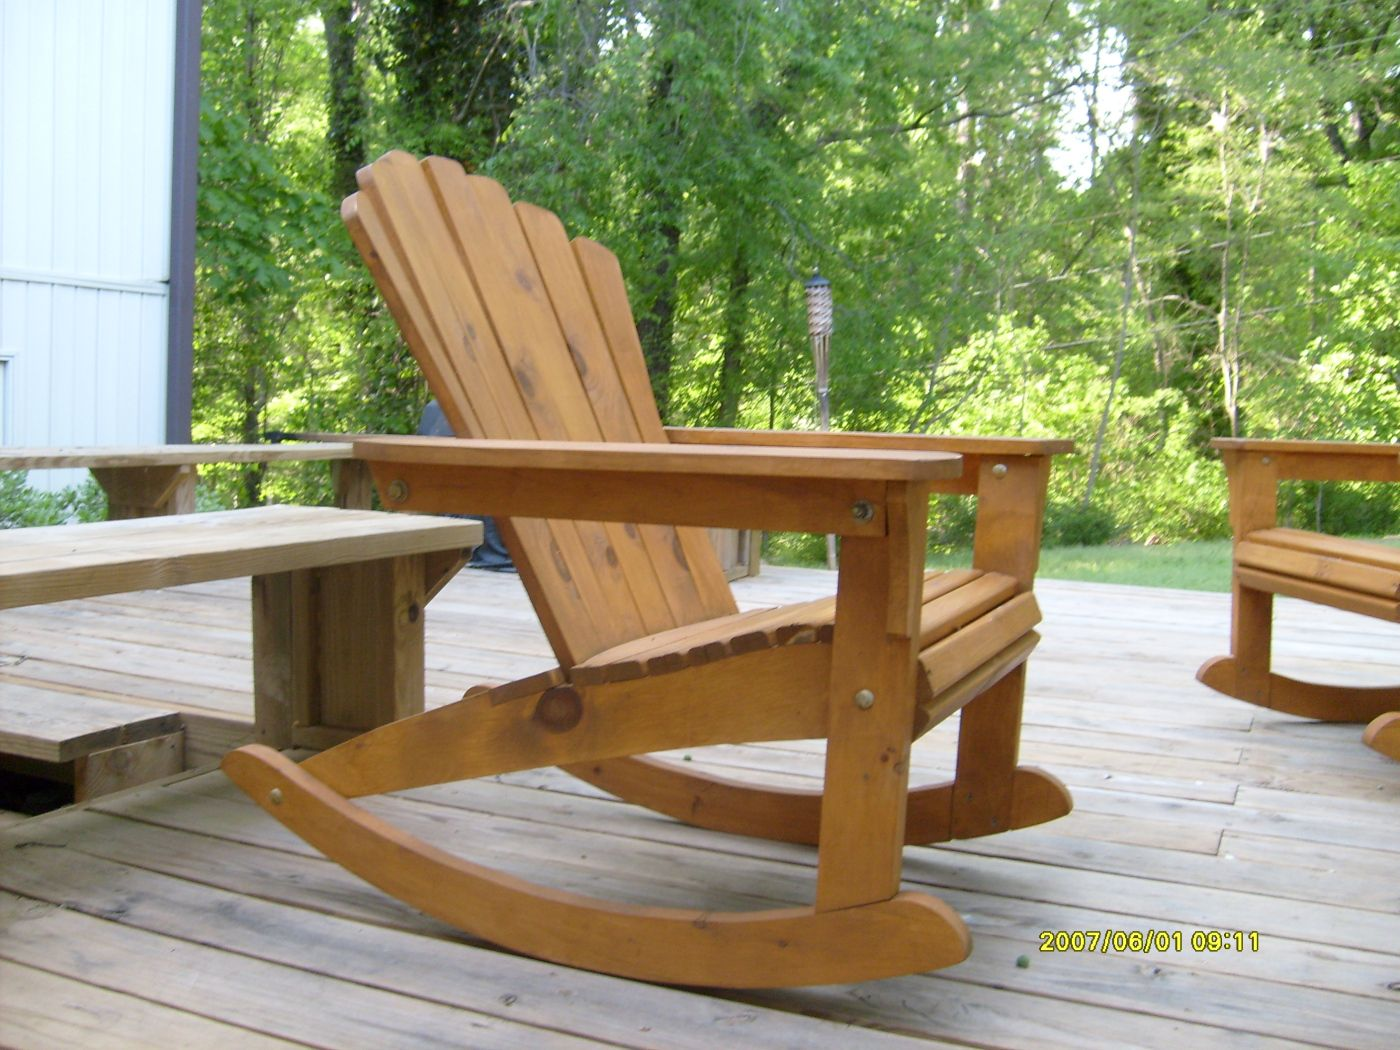 DIY Diy Adirondack Chair Kit Wooden PDF wood river block plane